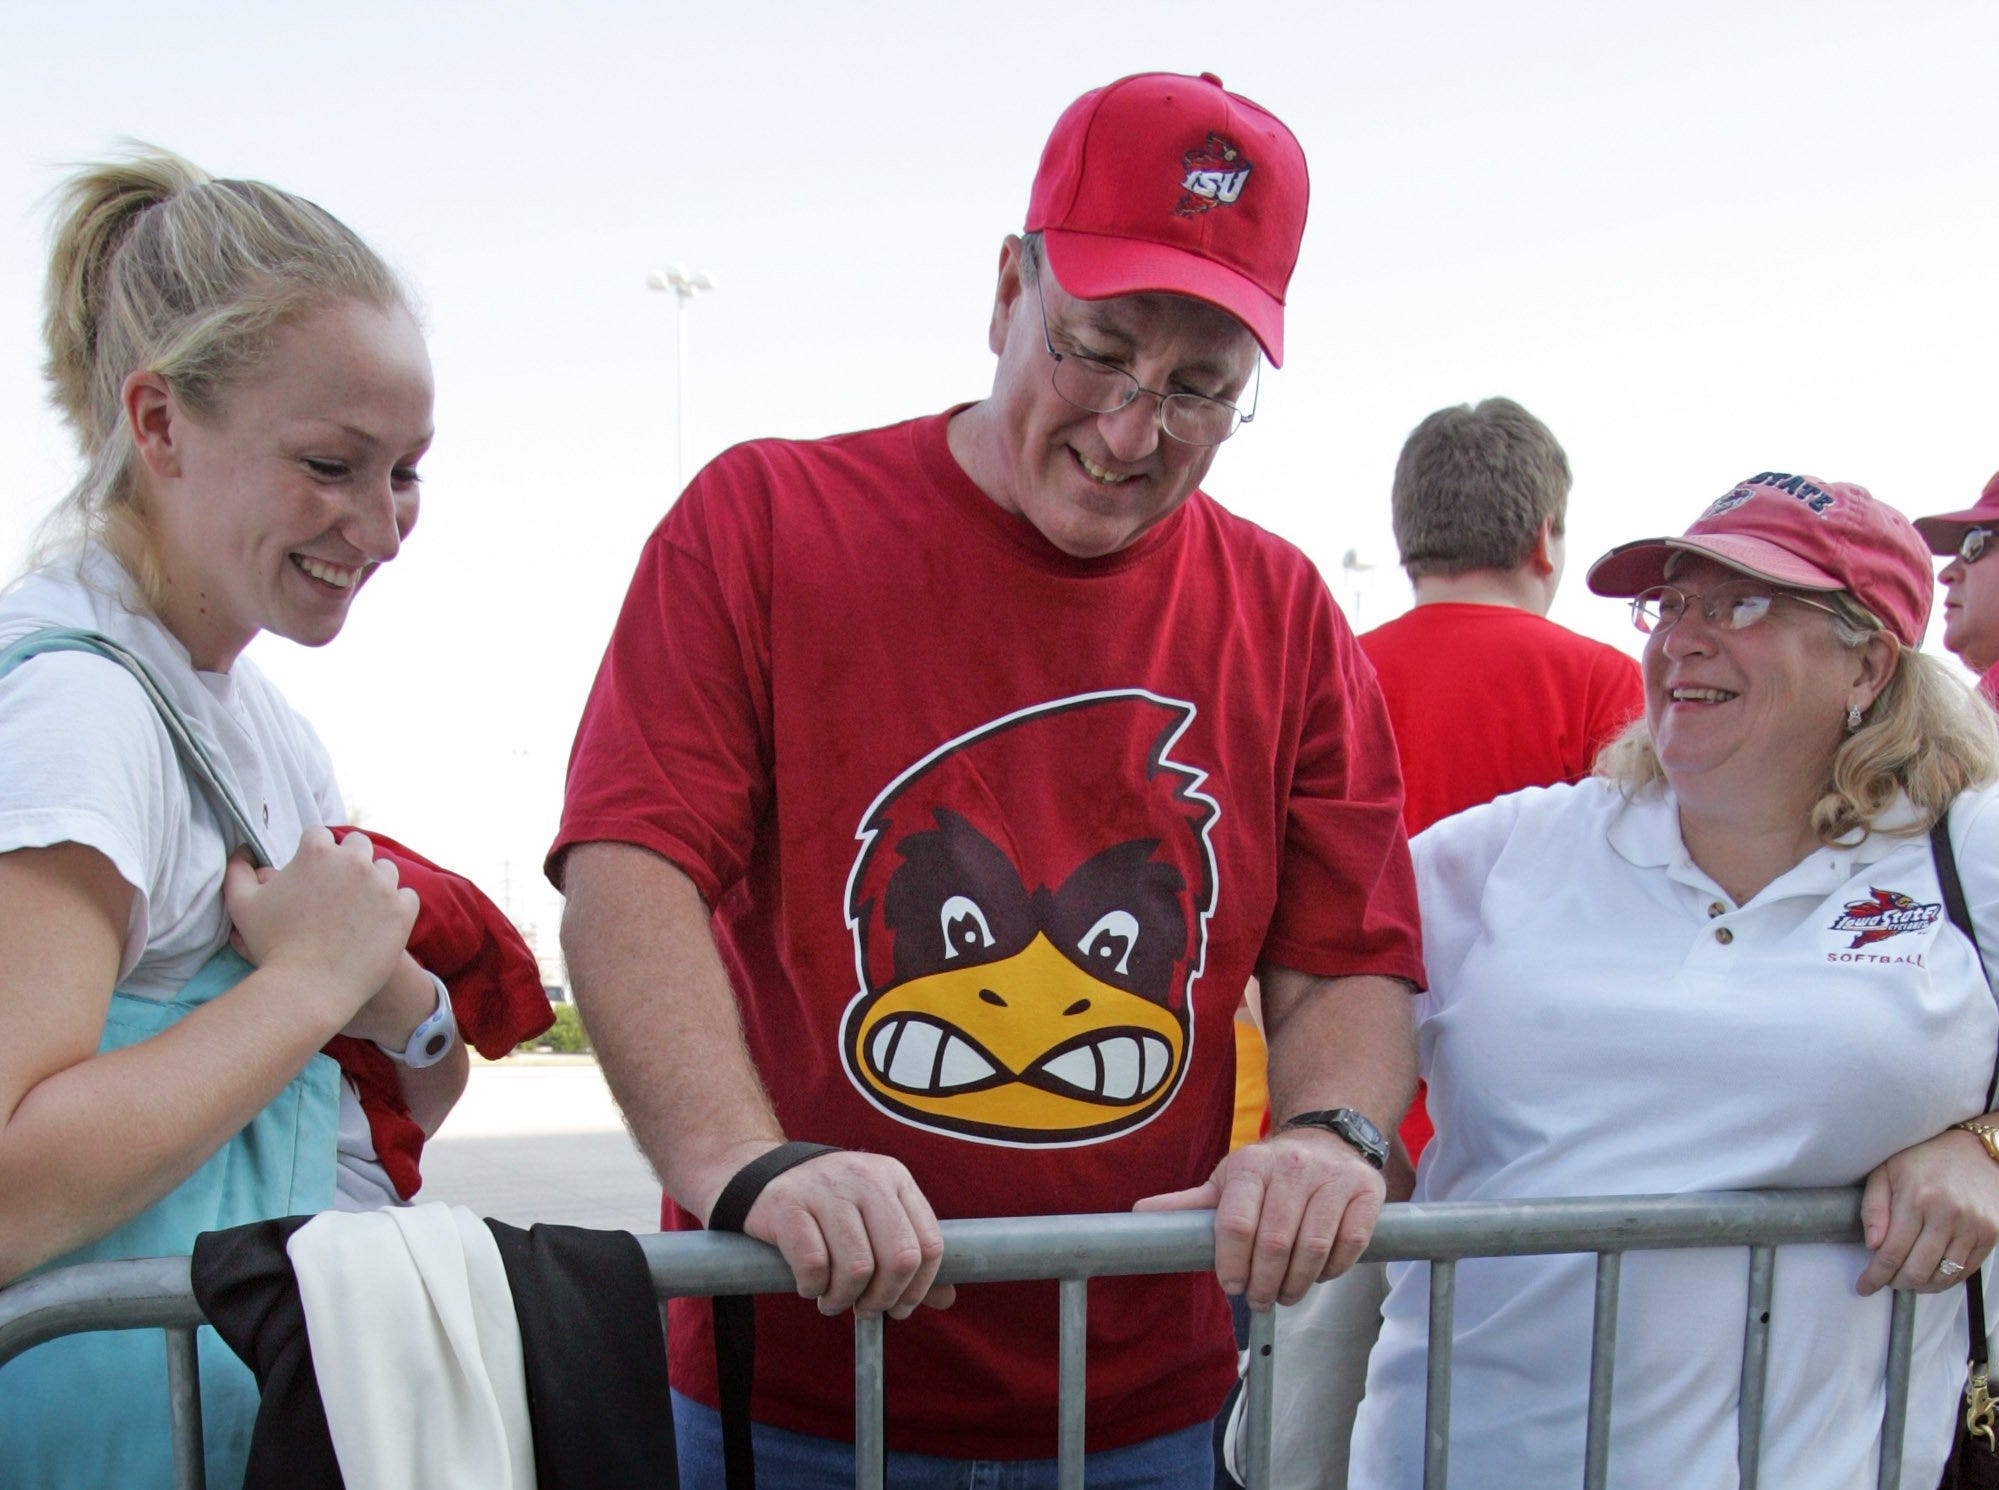 From 2005: The Ransom family of Round Rock, Texas, looks at a game program. Alyssa Ransom, left, plays softball for Iowa State. Randy and Carole Ransom are her parents.